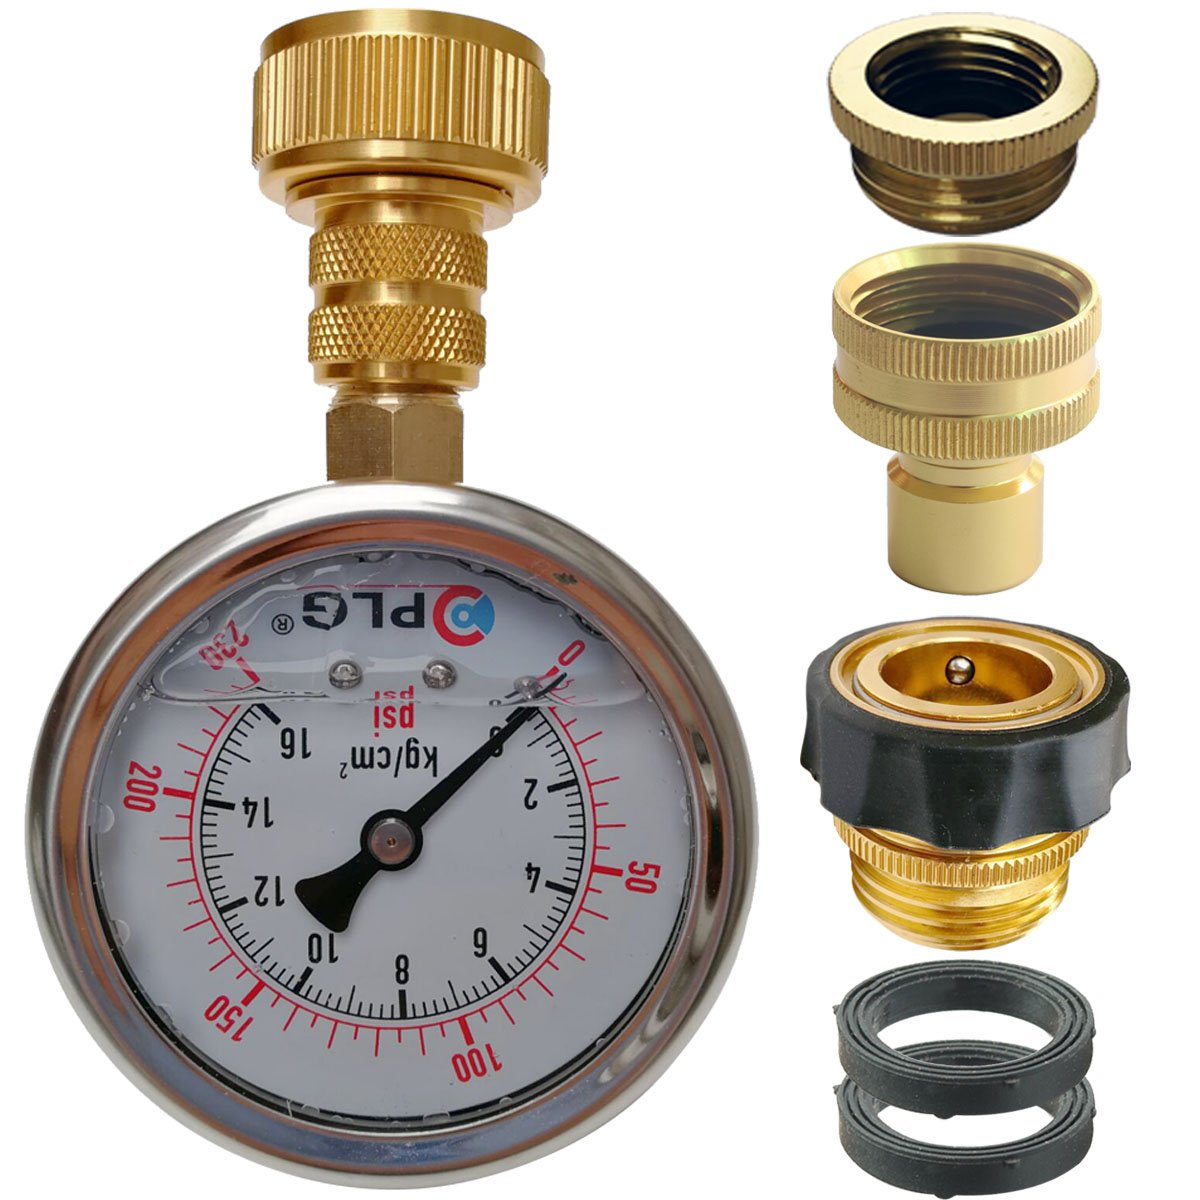 PLG Quick Connect/Disconnect Water Pressure Gauge Kit,2 in.Gauge w/Oil, 0 psi 230 psi,Push-Lock 3/4'' GHT Hose Connector,3/4'' to 1/2'' Spigot Adapters